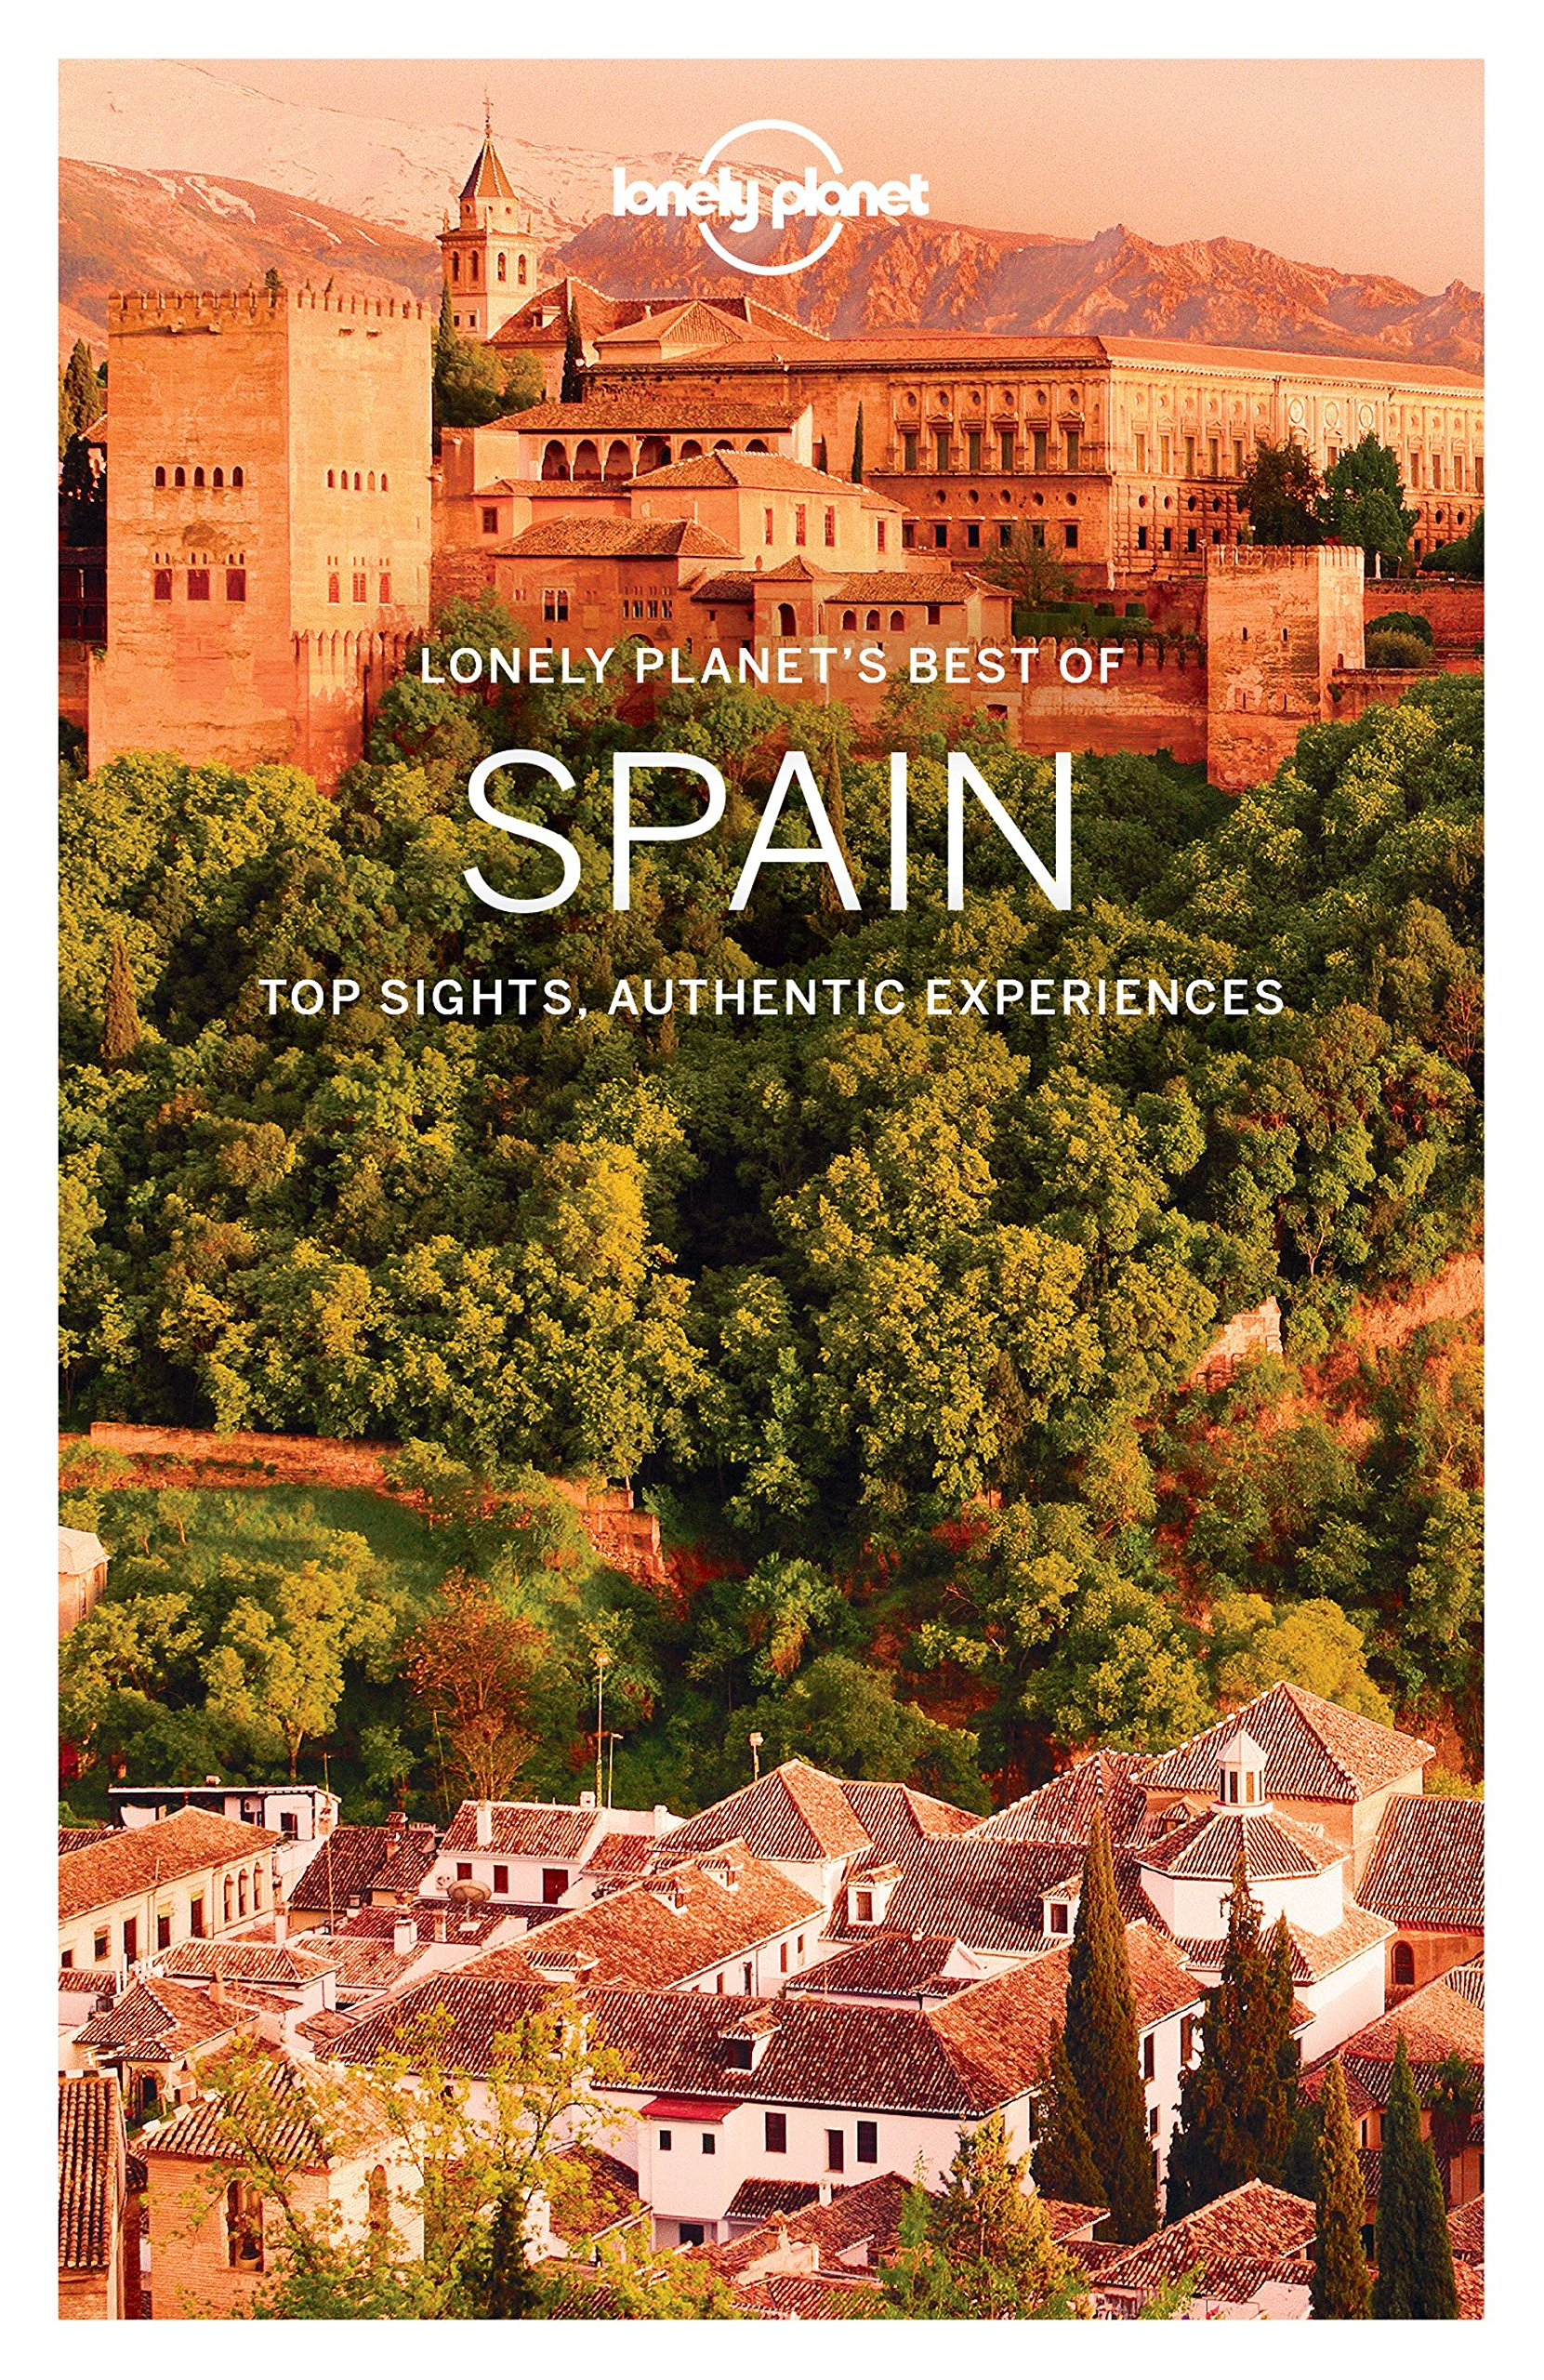 Lonely Planet Best of Spain: Top sights, authentic experiences